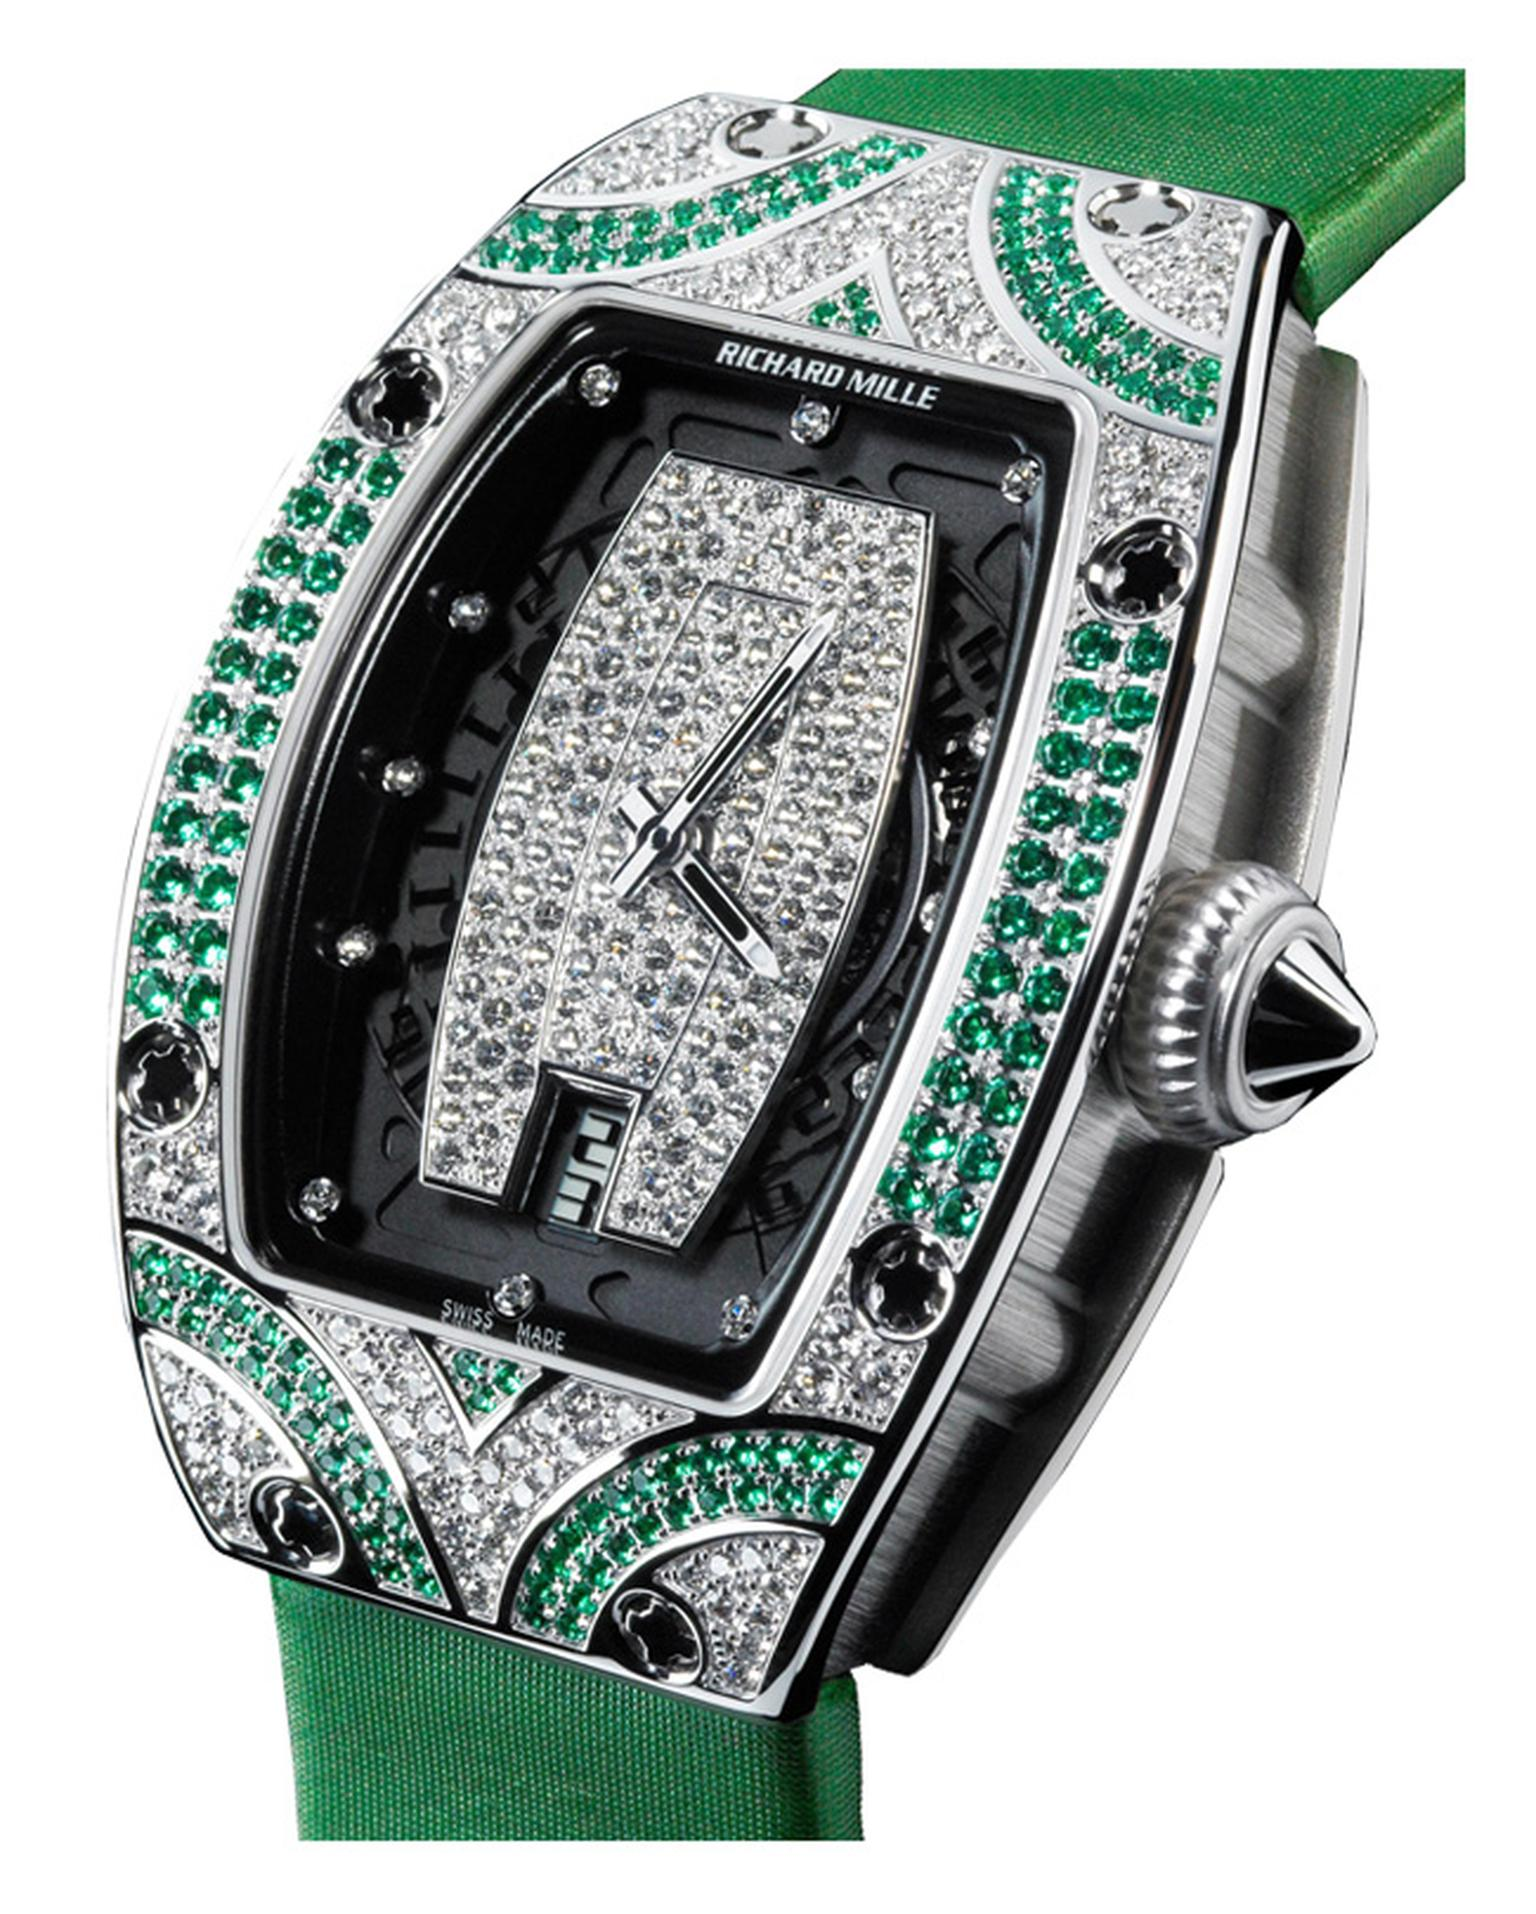 Richard Mille 007 emeralds and diamonds_20131017_Main